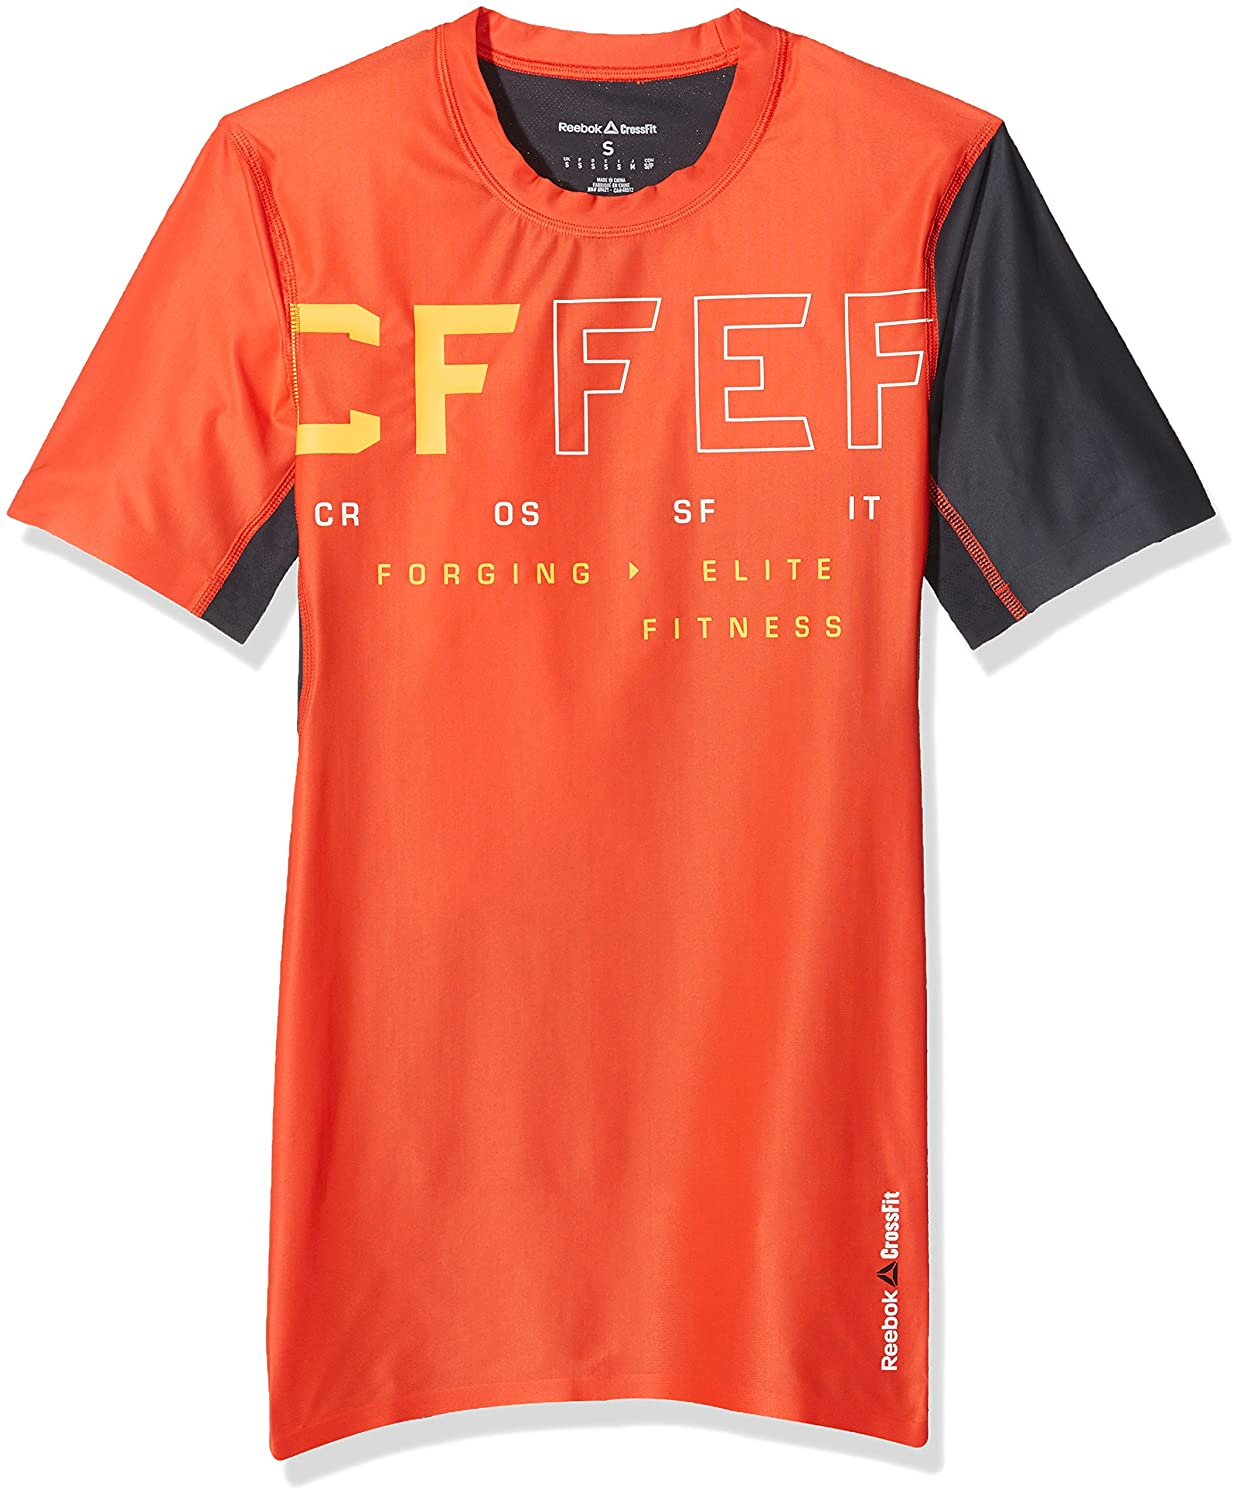 Hombre Reebok Rcf Ss Compression Top Camiseta